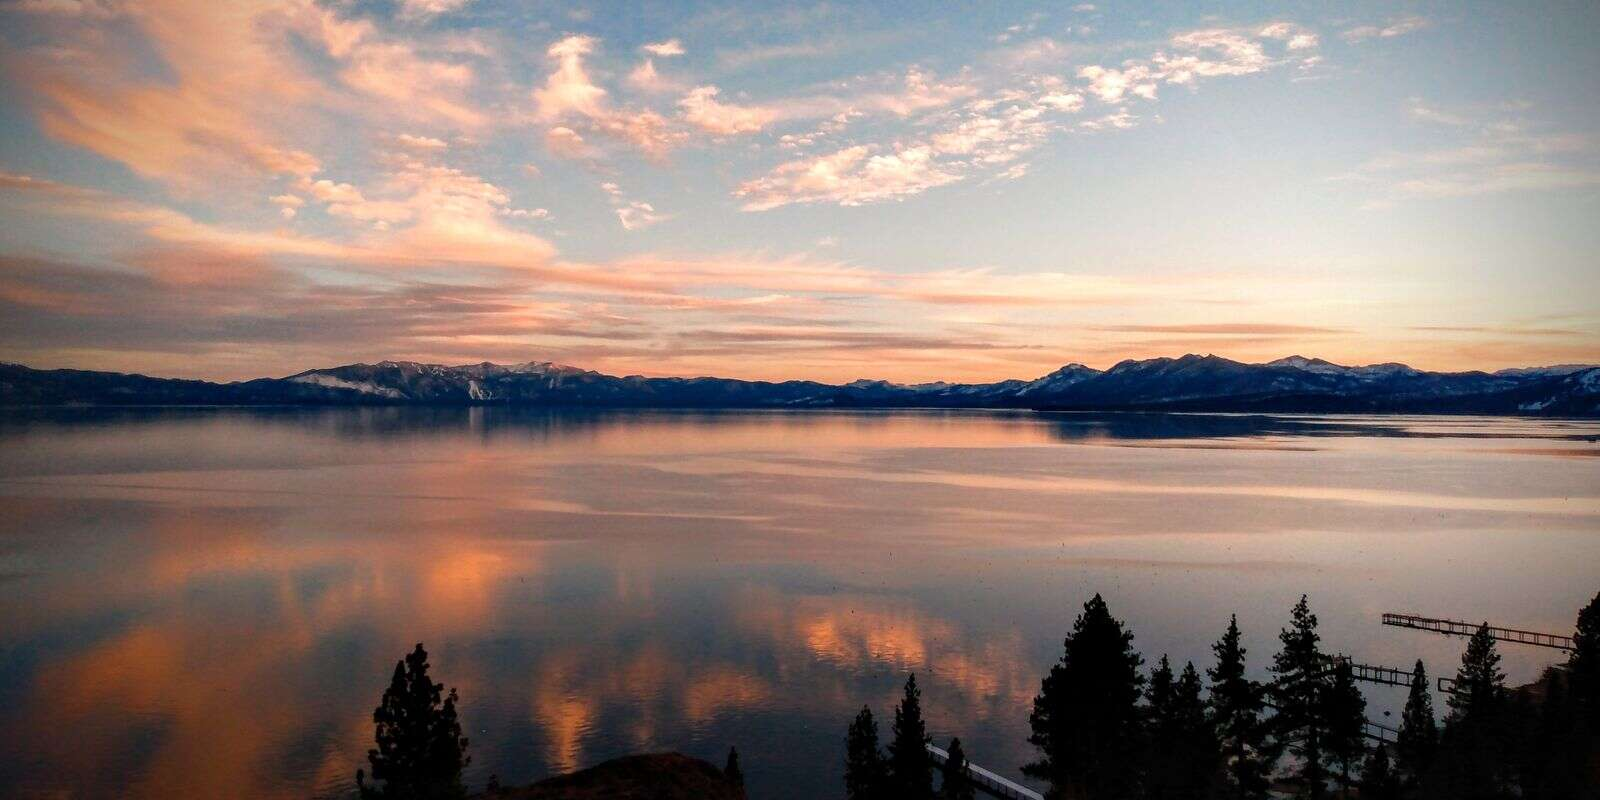 Lake Tahoe sunset. | Submitted by Tim Mayhew